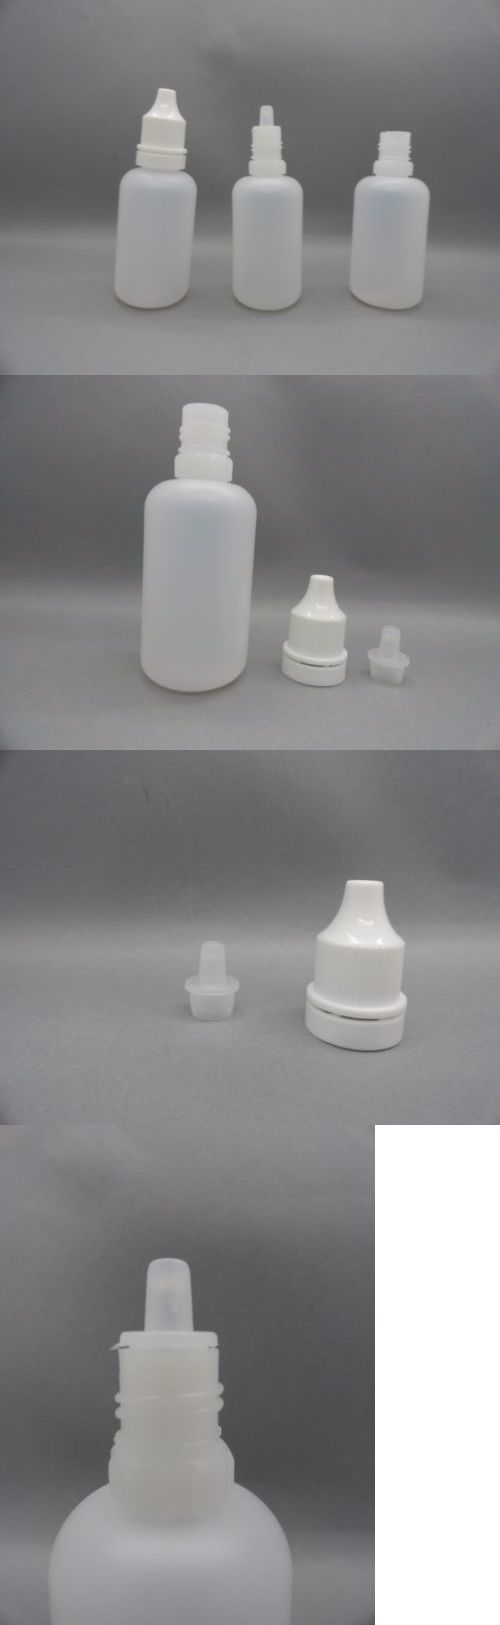 Other Health and Beauty: Squeeze Plastic Bottle Eye Dropper Oil Liquid Glue 30 Ml 1 Oz Screw Cap Lot -> BUY IT NOW ONLY: $169.99 on eBay!